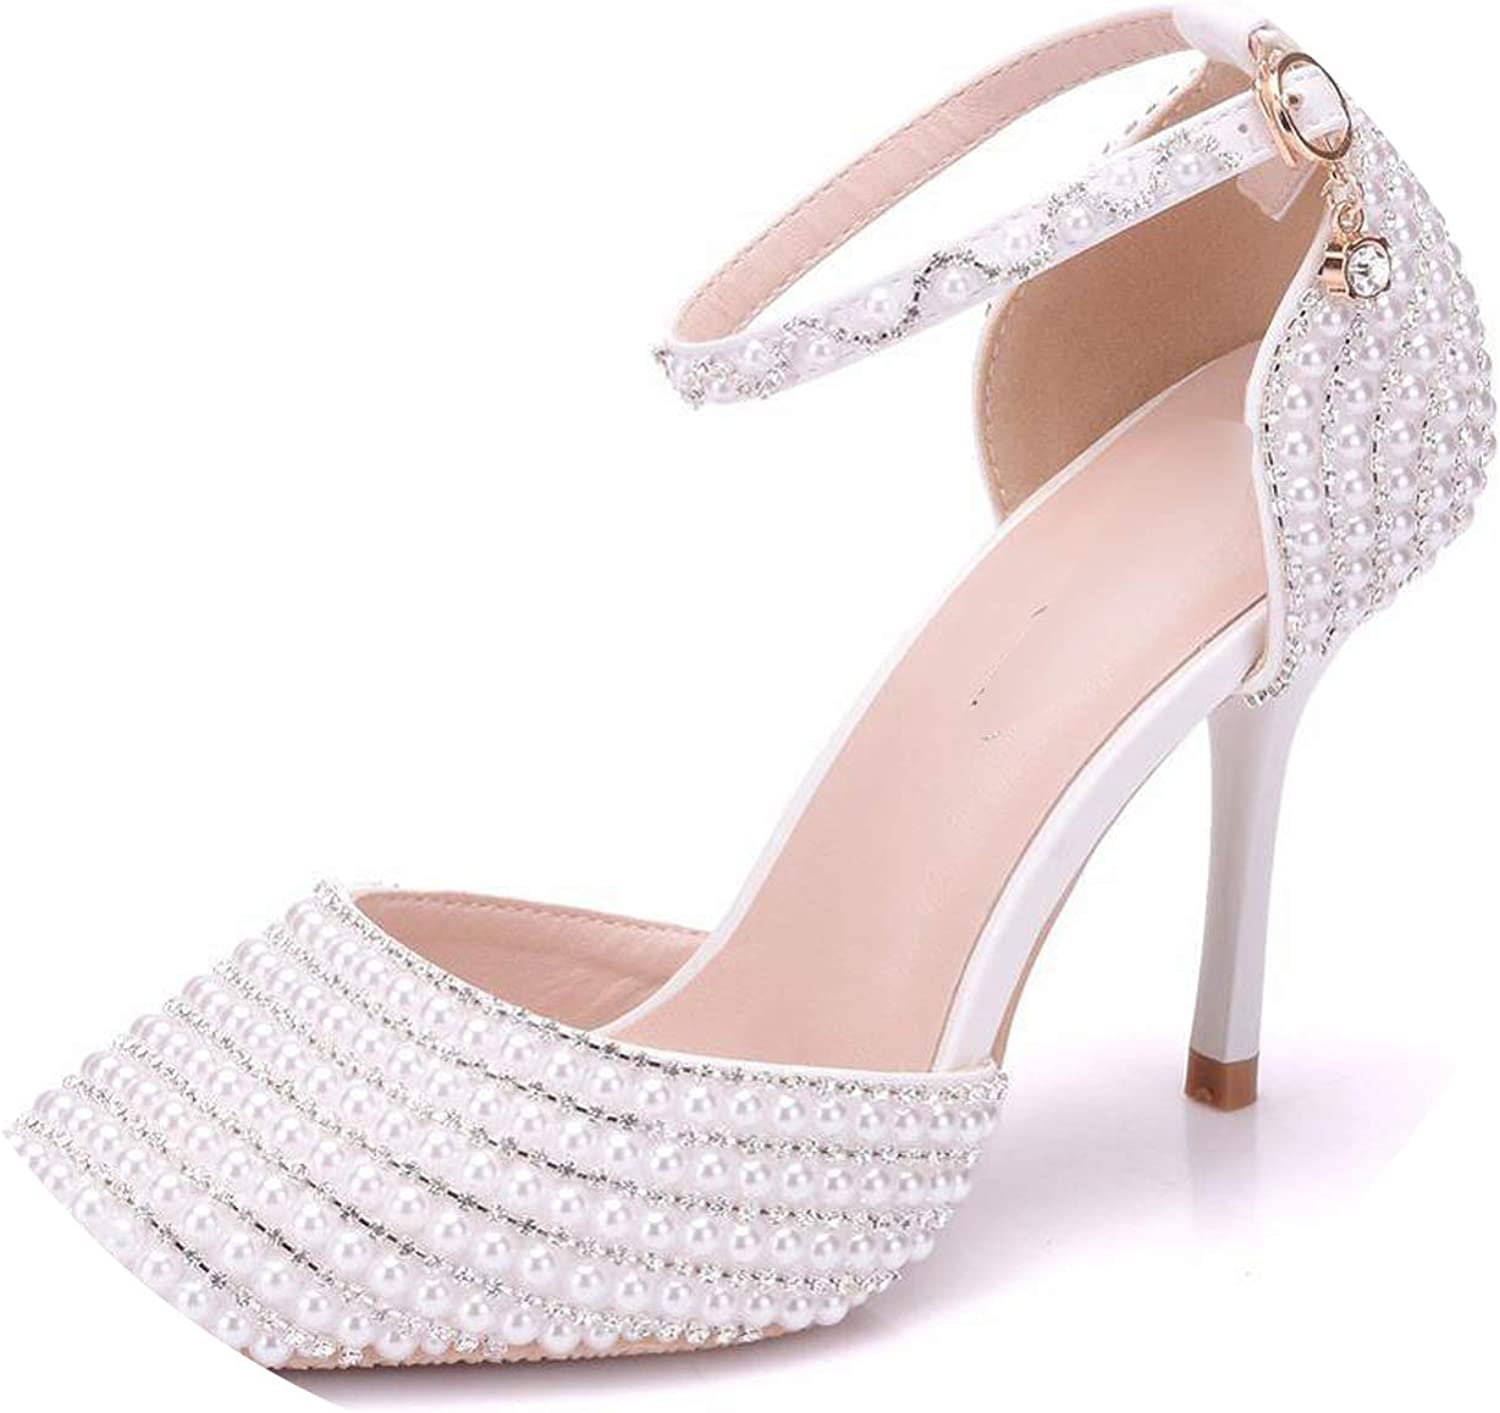 Sunny Doll Fashion shoes 2019 Women High Heels Pump Full Pearl Heels Wedding Party shoes Ankle Strap Crystal